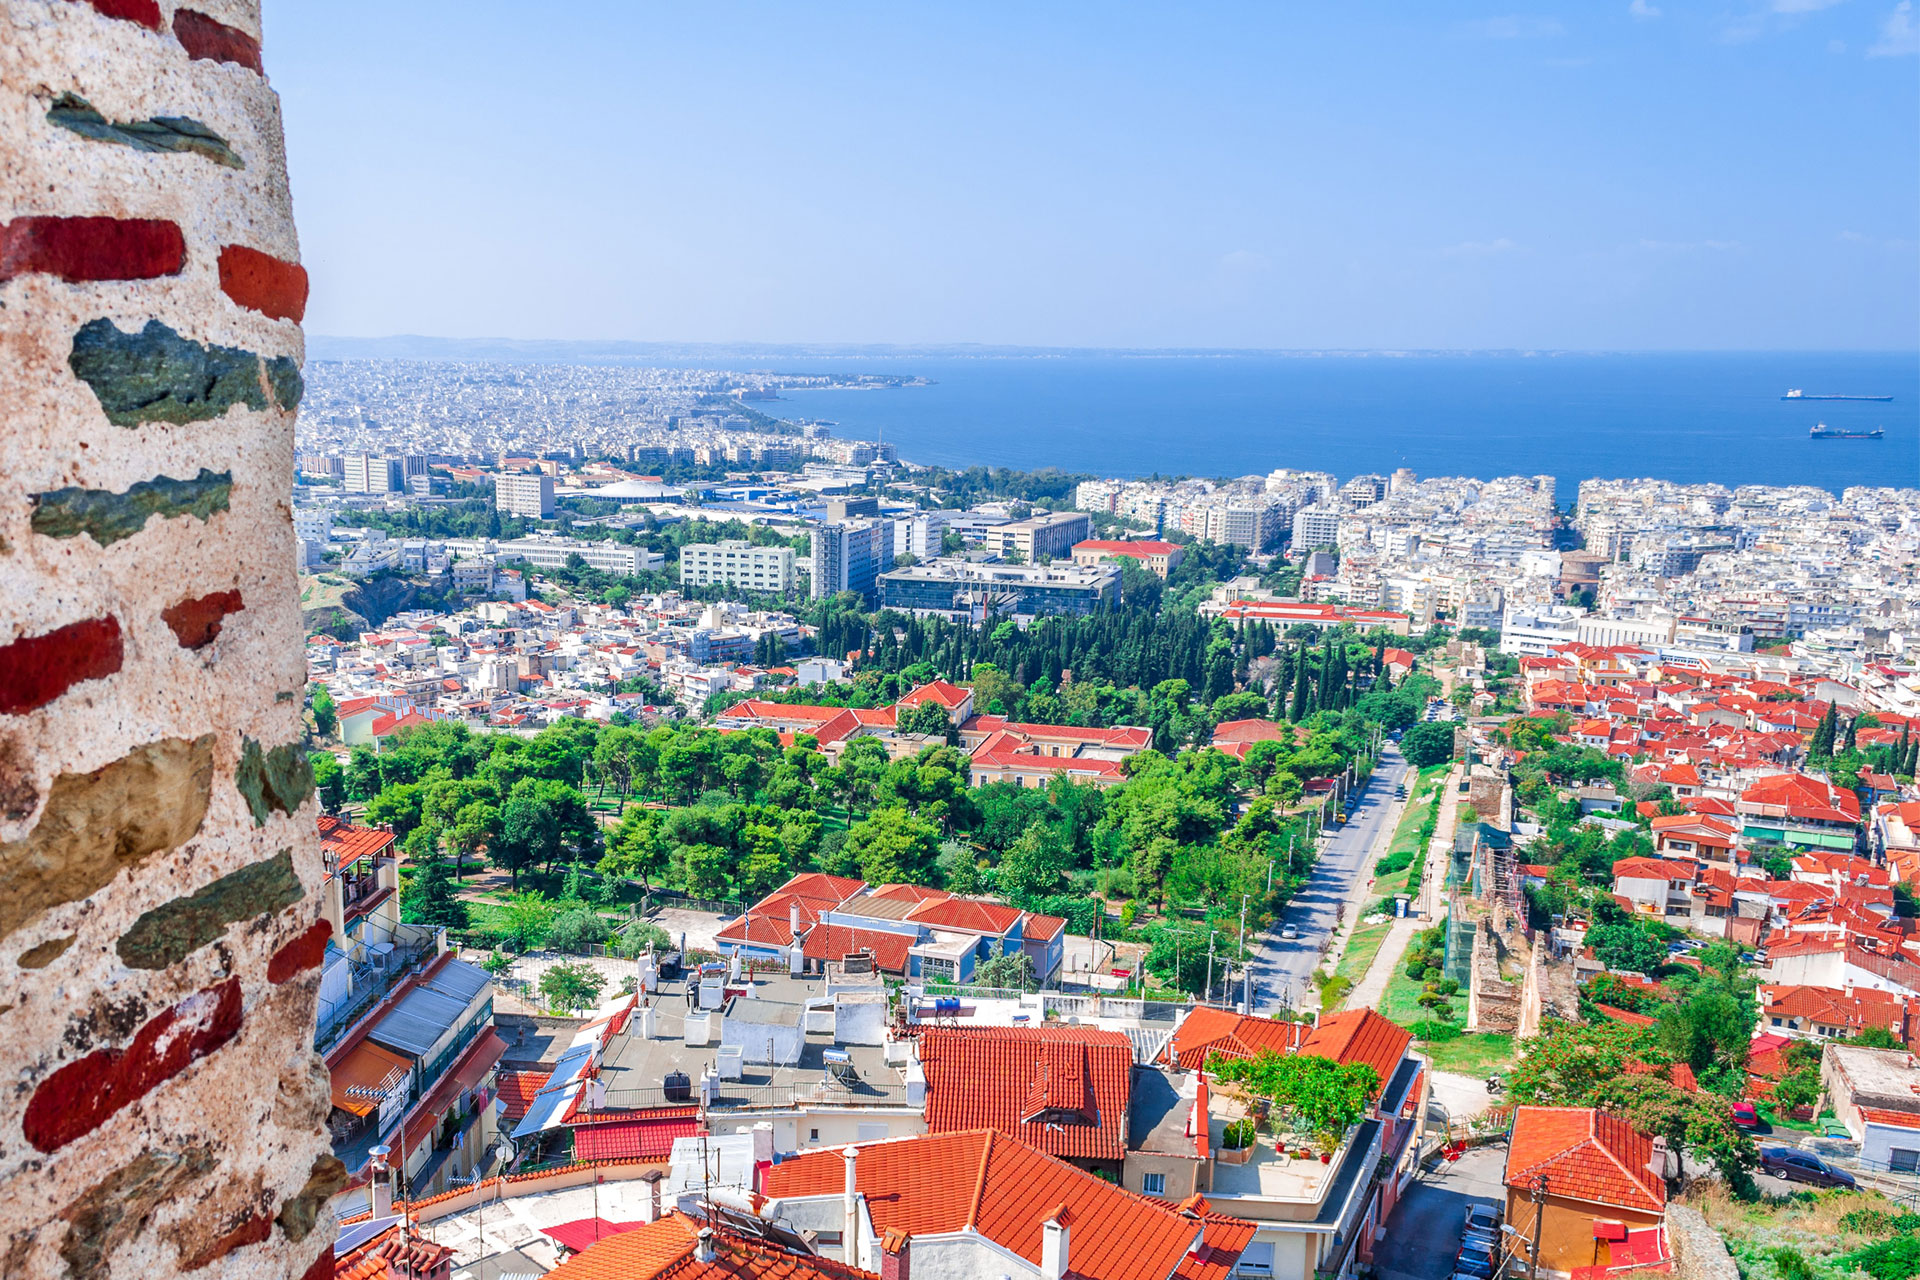 Surrounded by a dynamic and cosmopolitan city as Thessaloniki